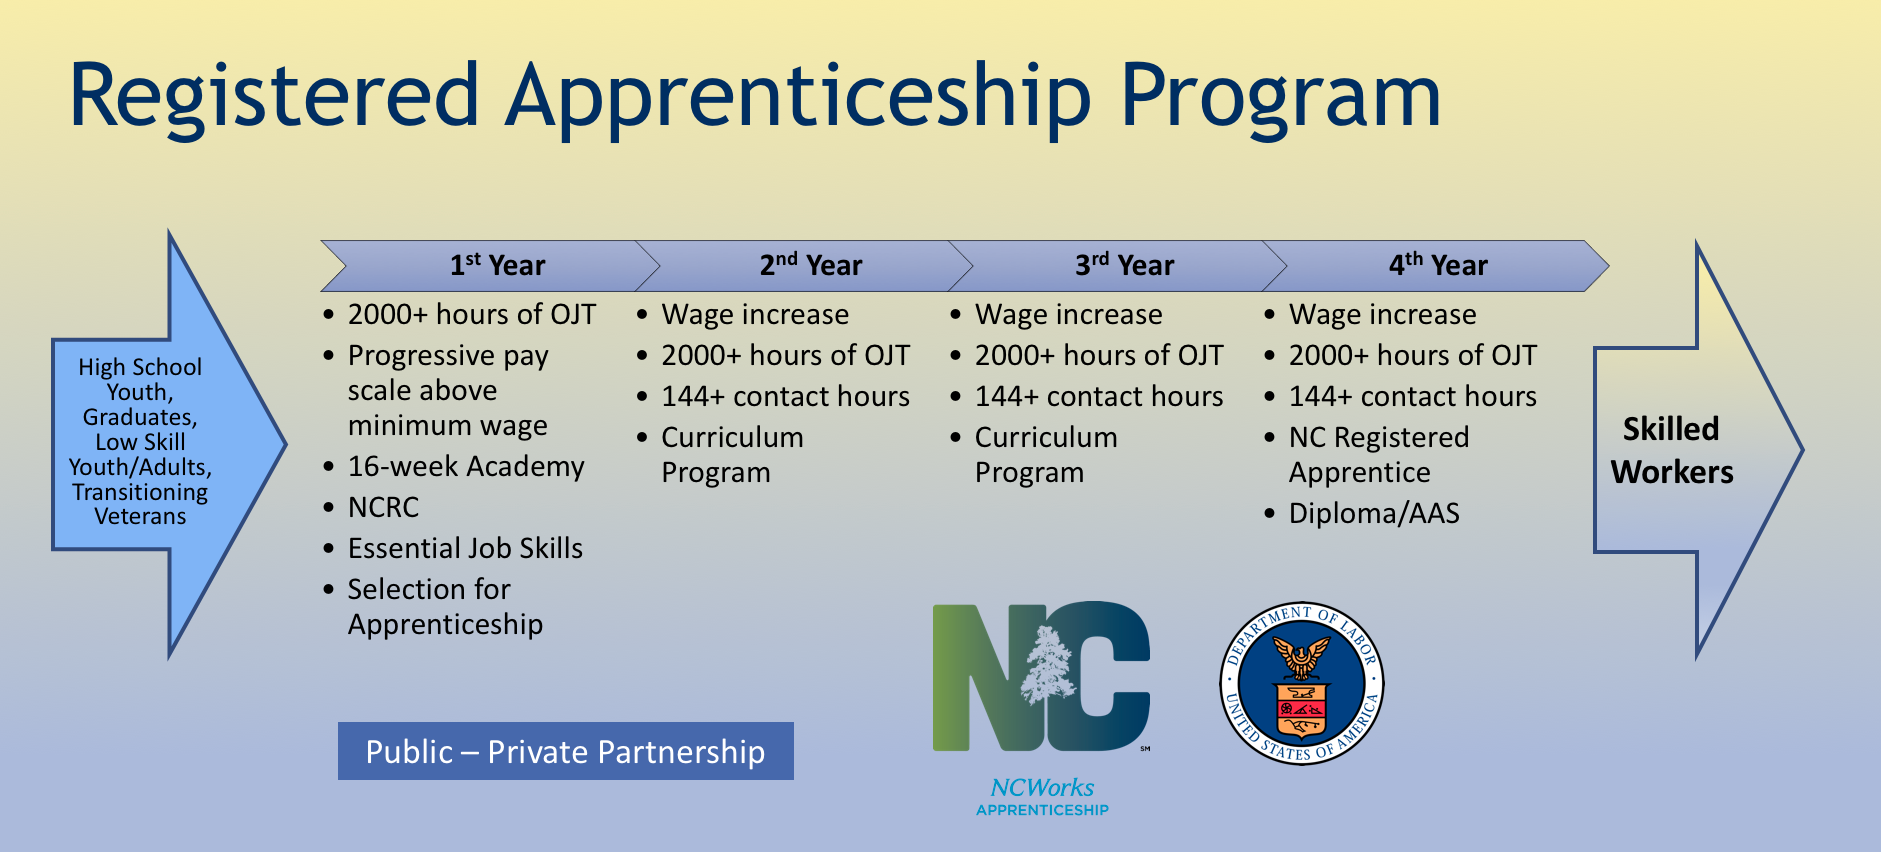 Registered Apprenticeship Program